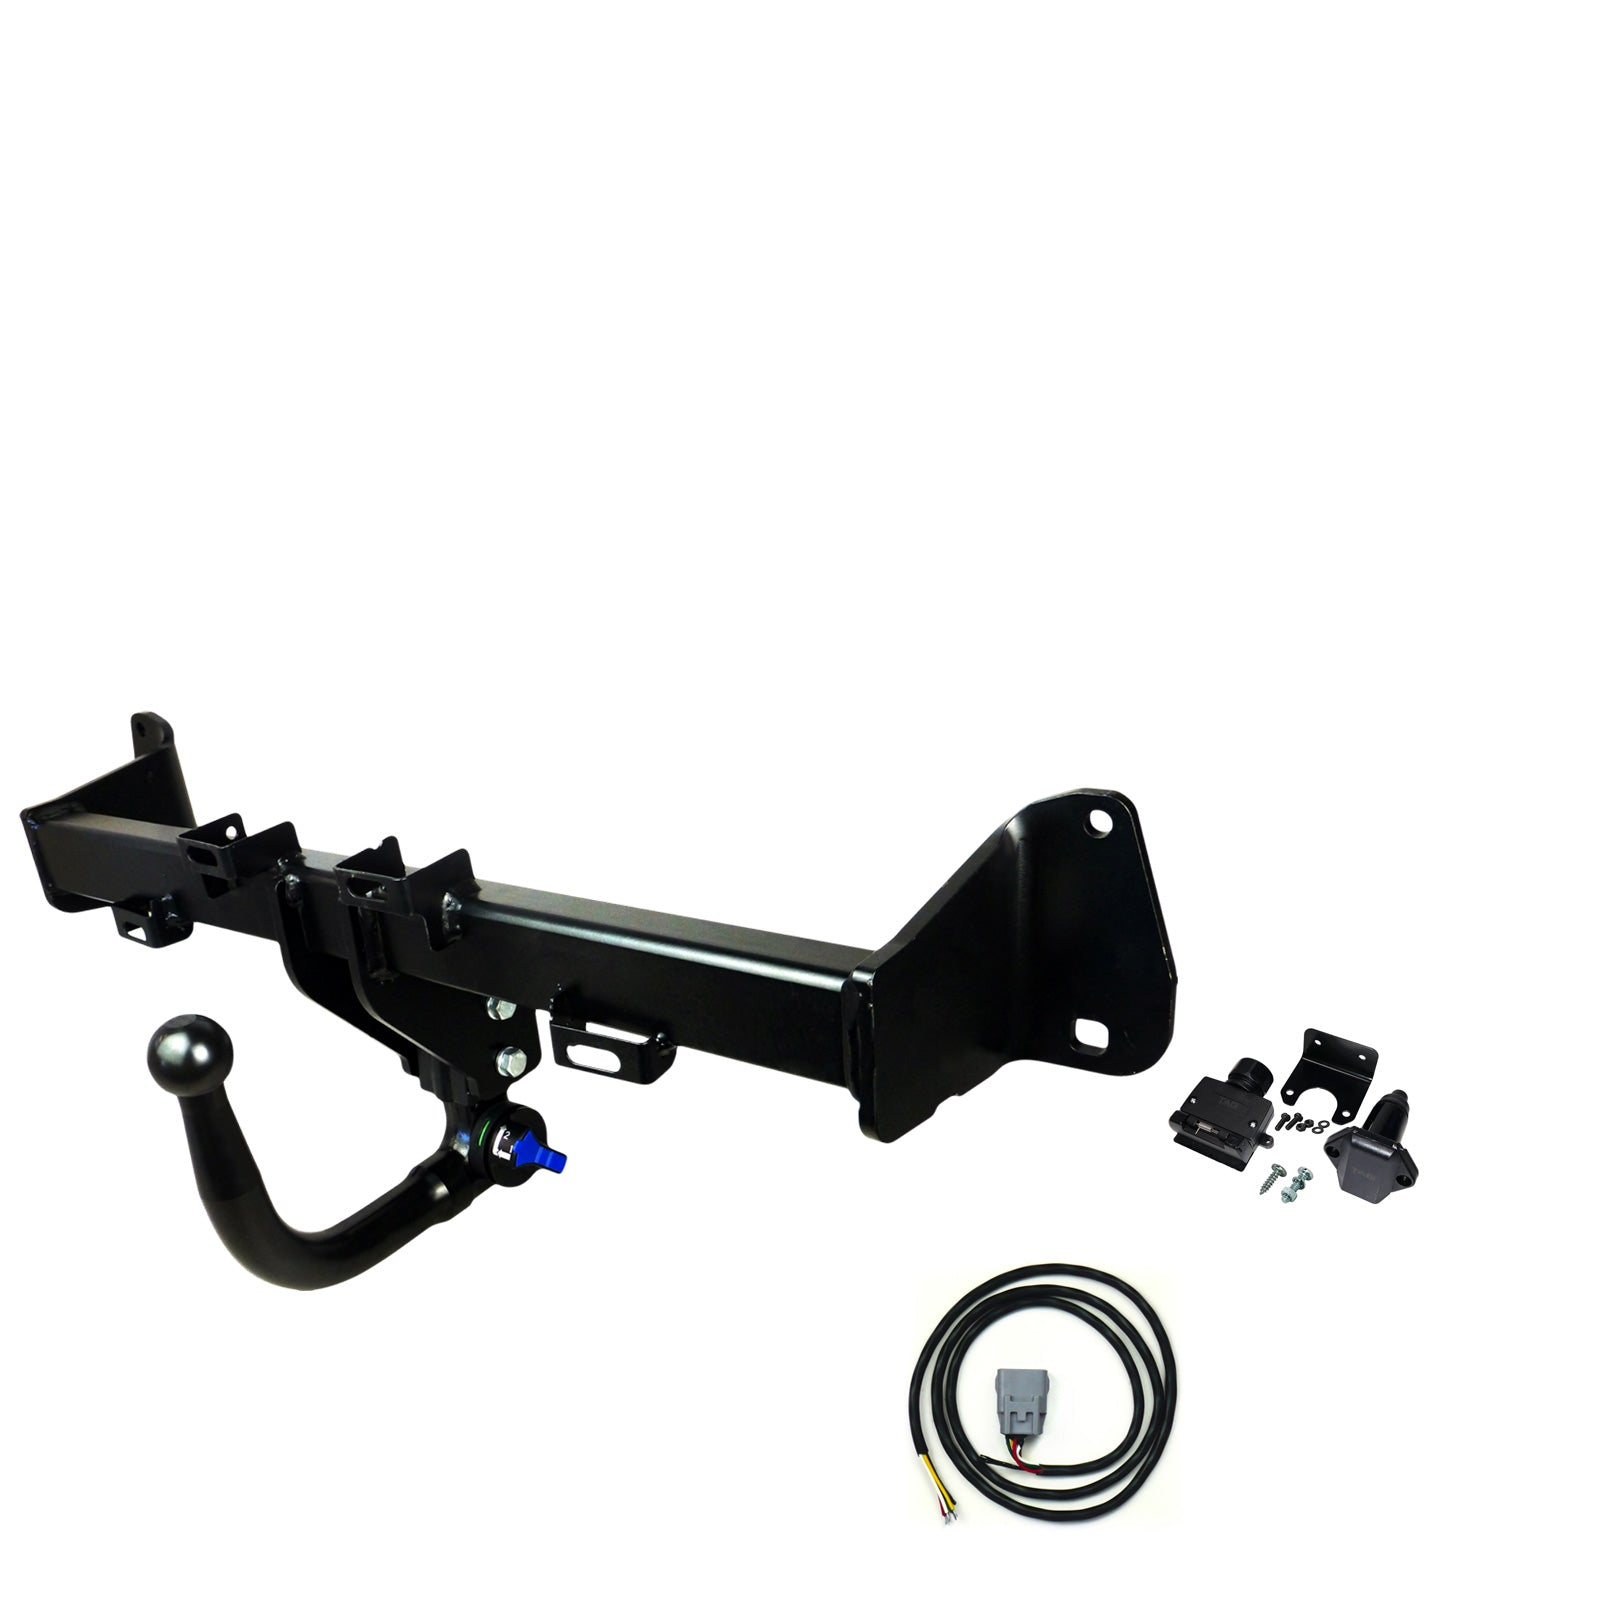 TAG Towbars European Style Tongue to suit MERCEDES-BENZ CLA (05/2015 - on)